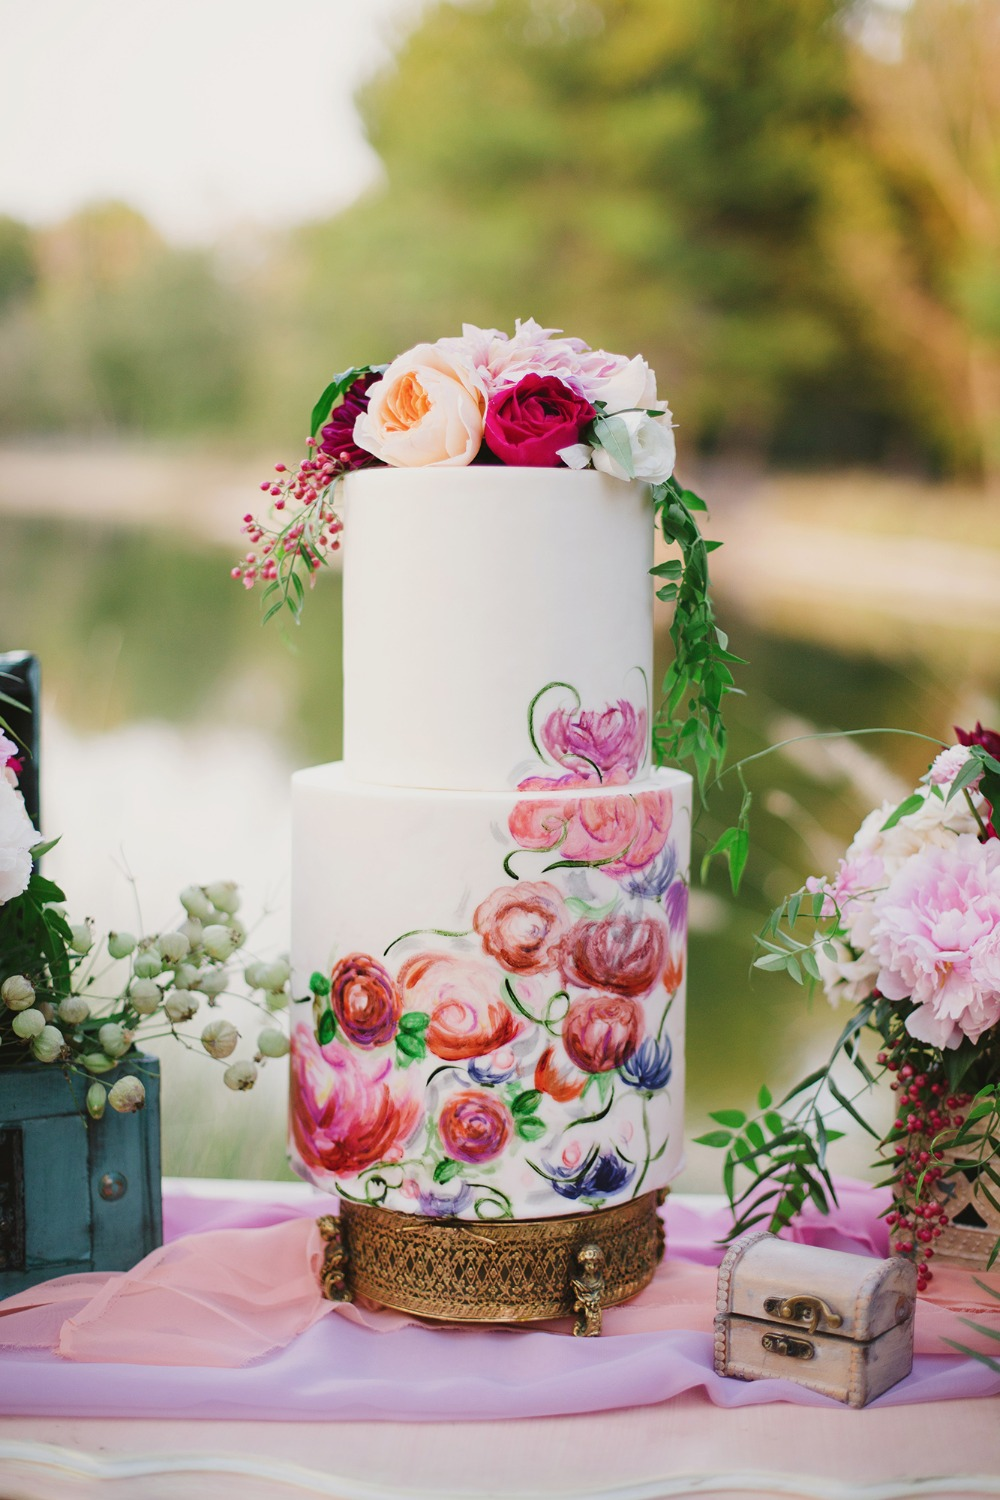 Gorgeous hand painted floral cake